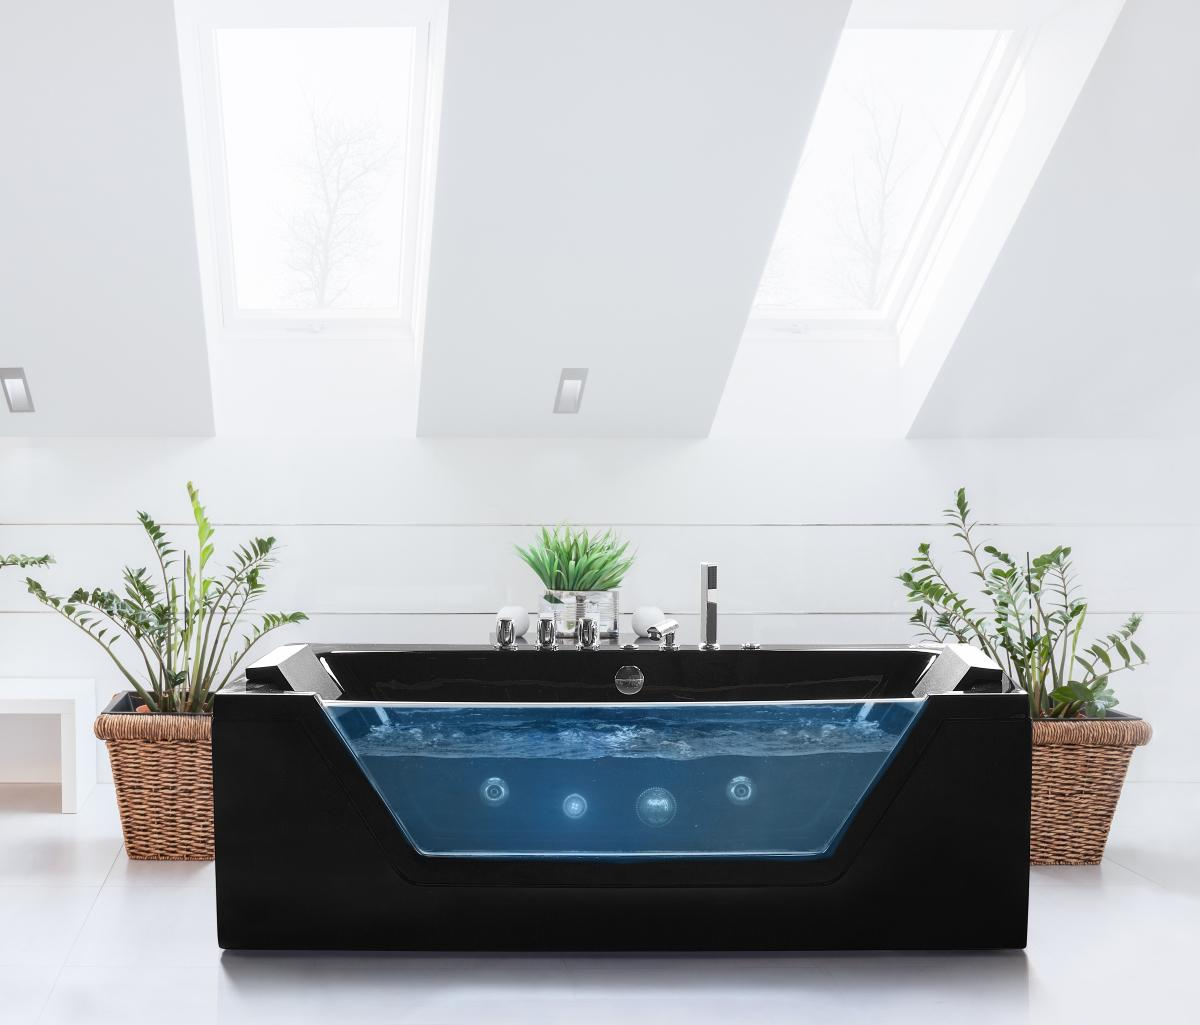 whirlpool badewanne samurai schwarz freistehend mit 10. Black Bedroom Furniture Sets. Home Design Ideas